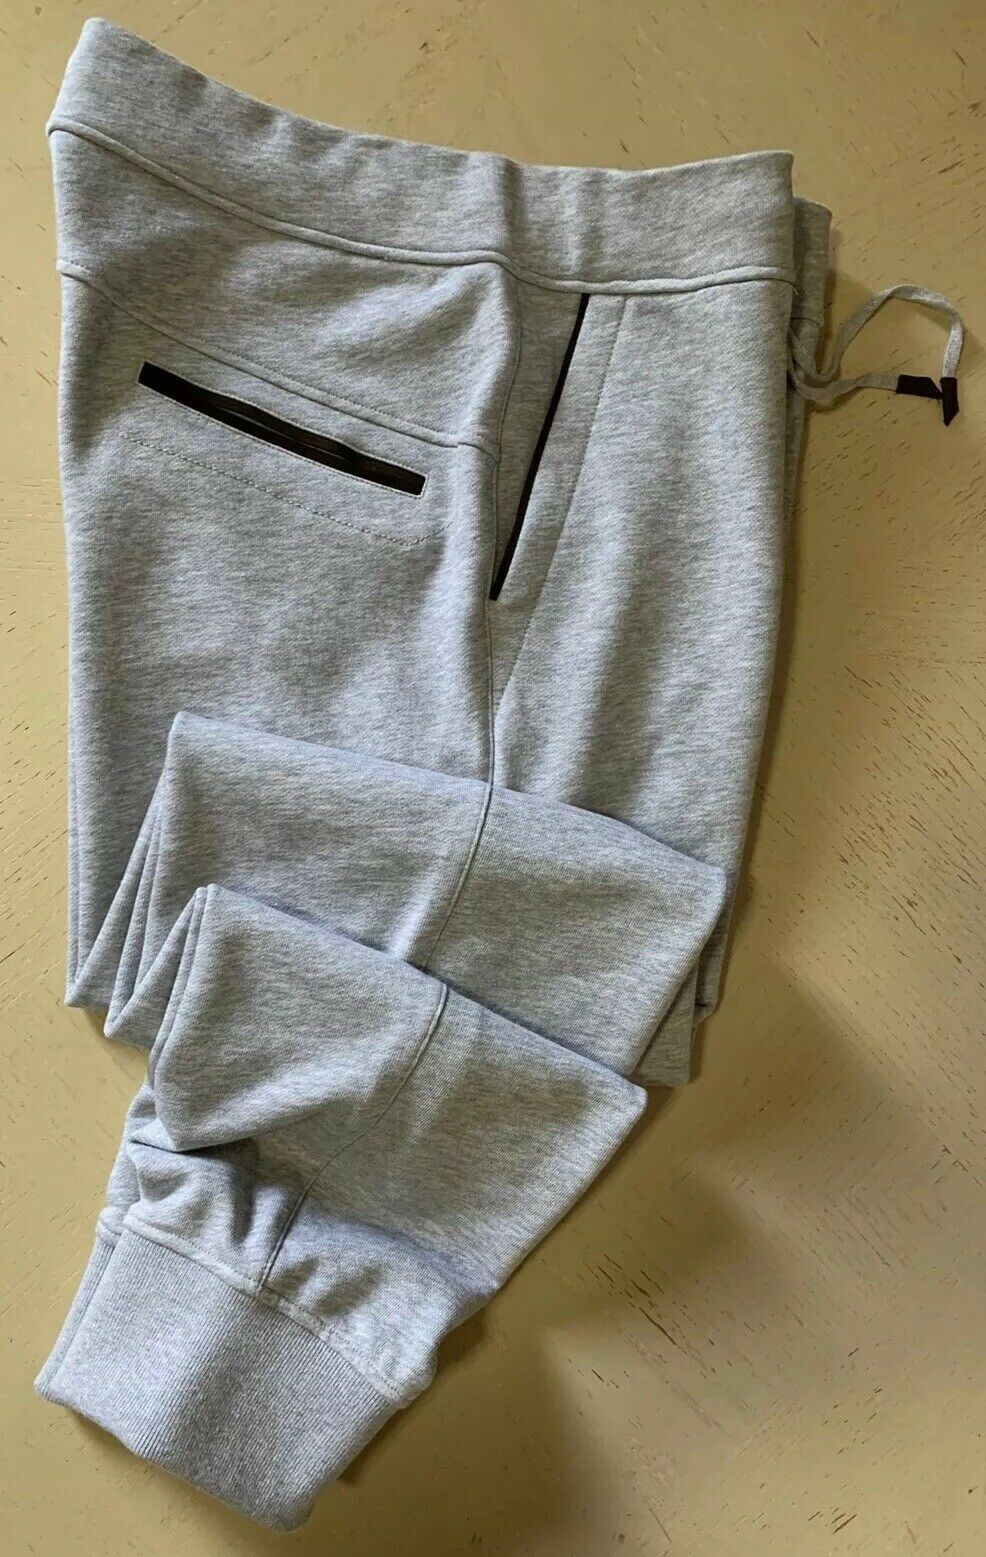 NWT $495 Ermenegildo Zegna Matching Leather Sweat Pants LT Gray 32 US ( 48 Eu )